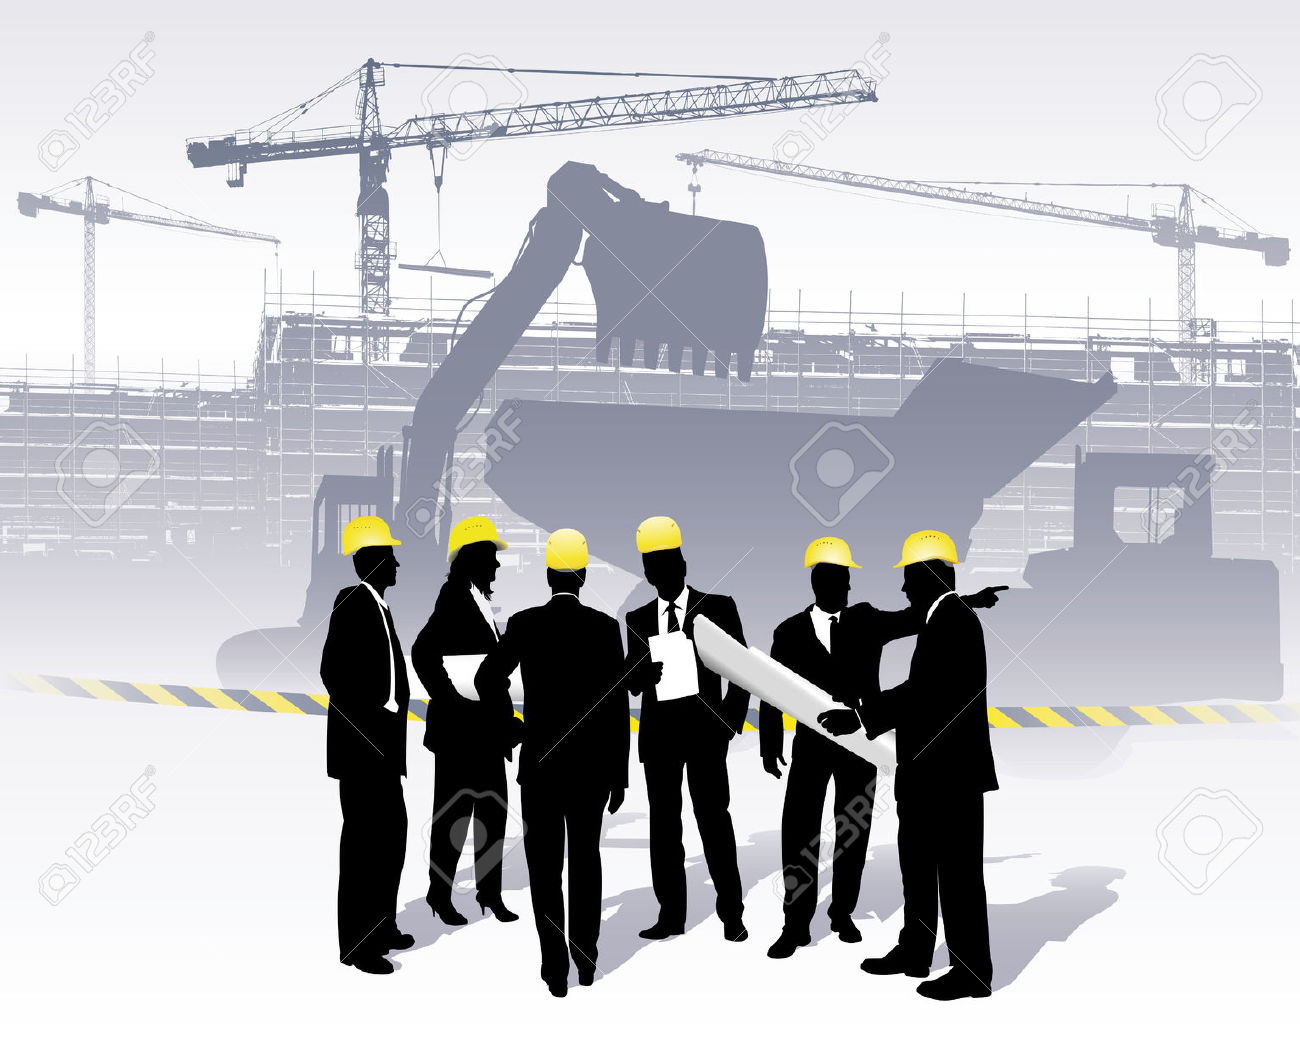 Site engineer clipart vector black and white download Site engineer clipart - ClipartFest vector black and white download